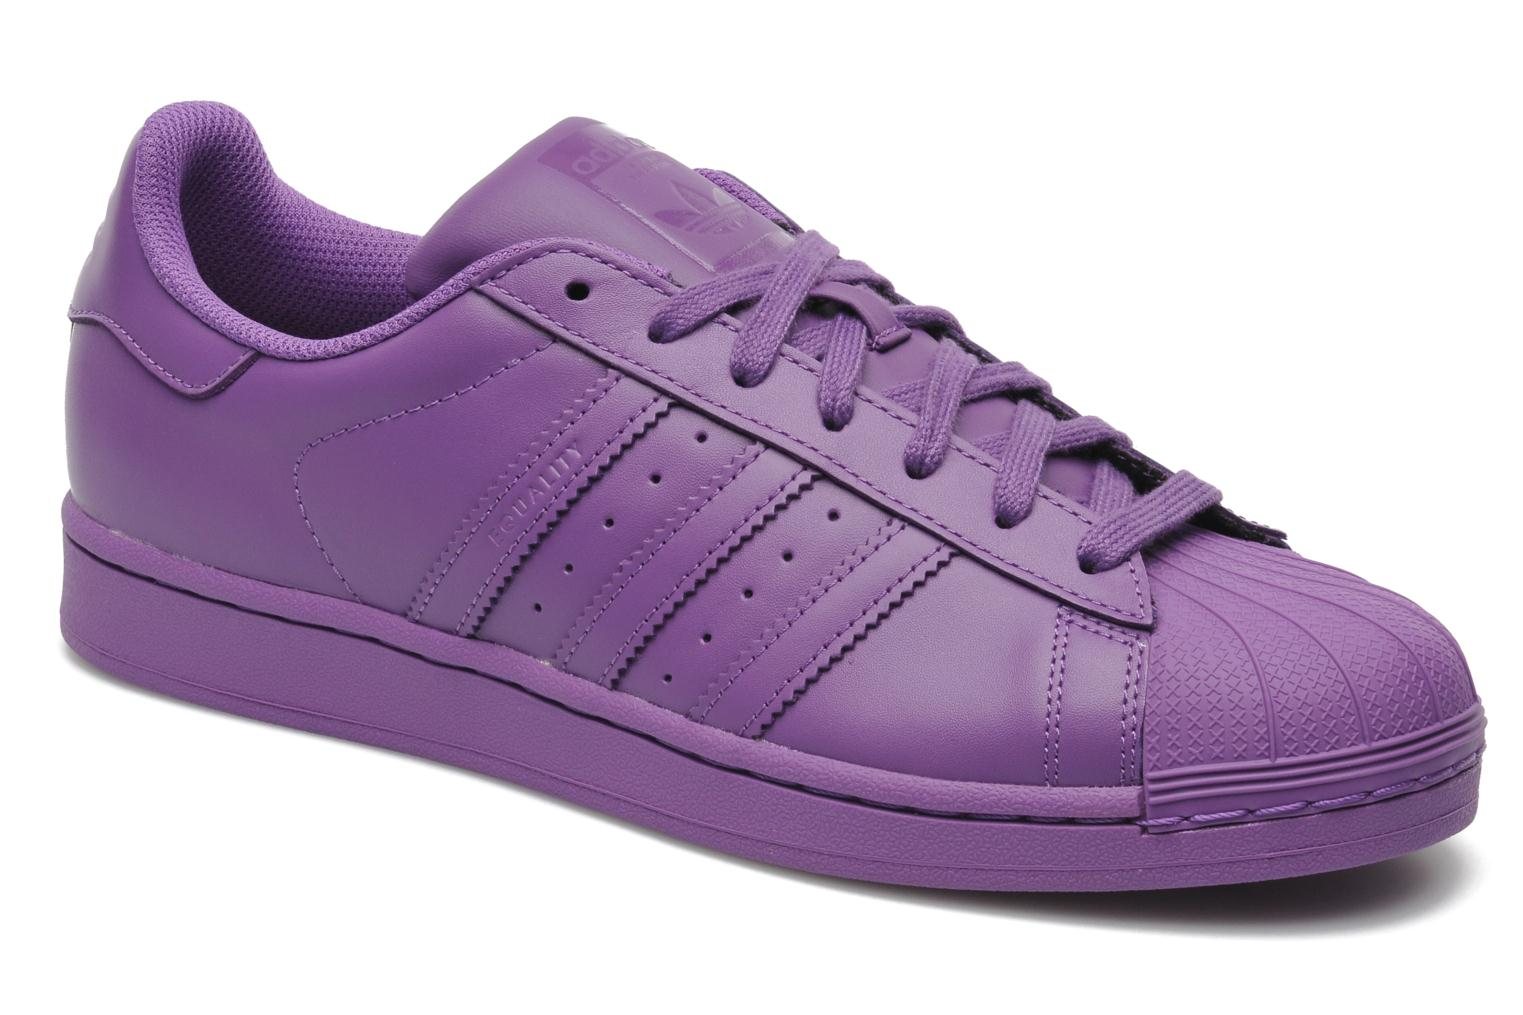 adidas superstar lilas